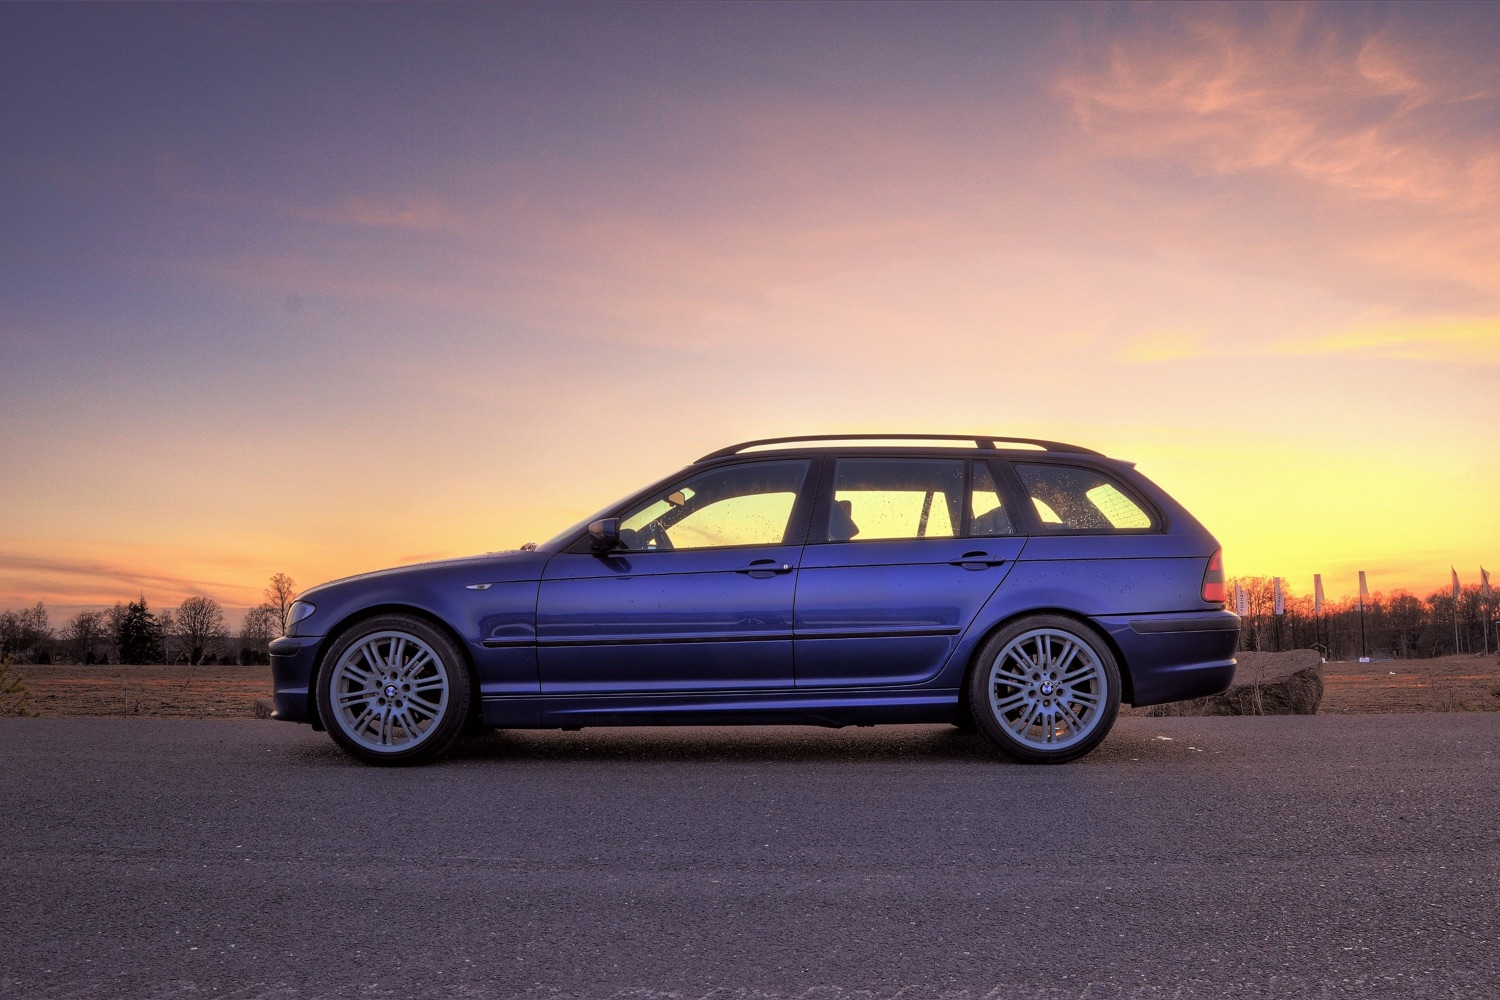 BMW E46 als Touring. Foto: Jonathan Petersson/Unsplash